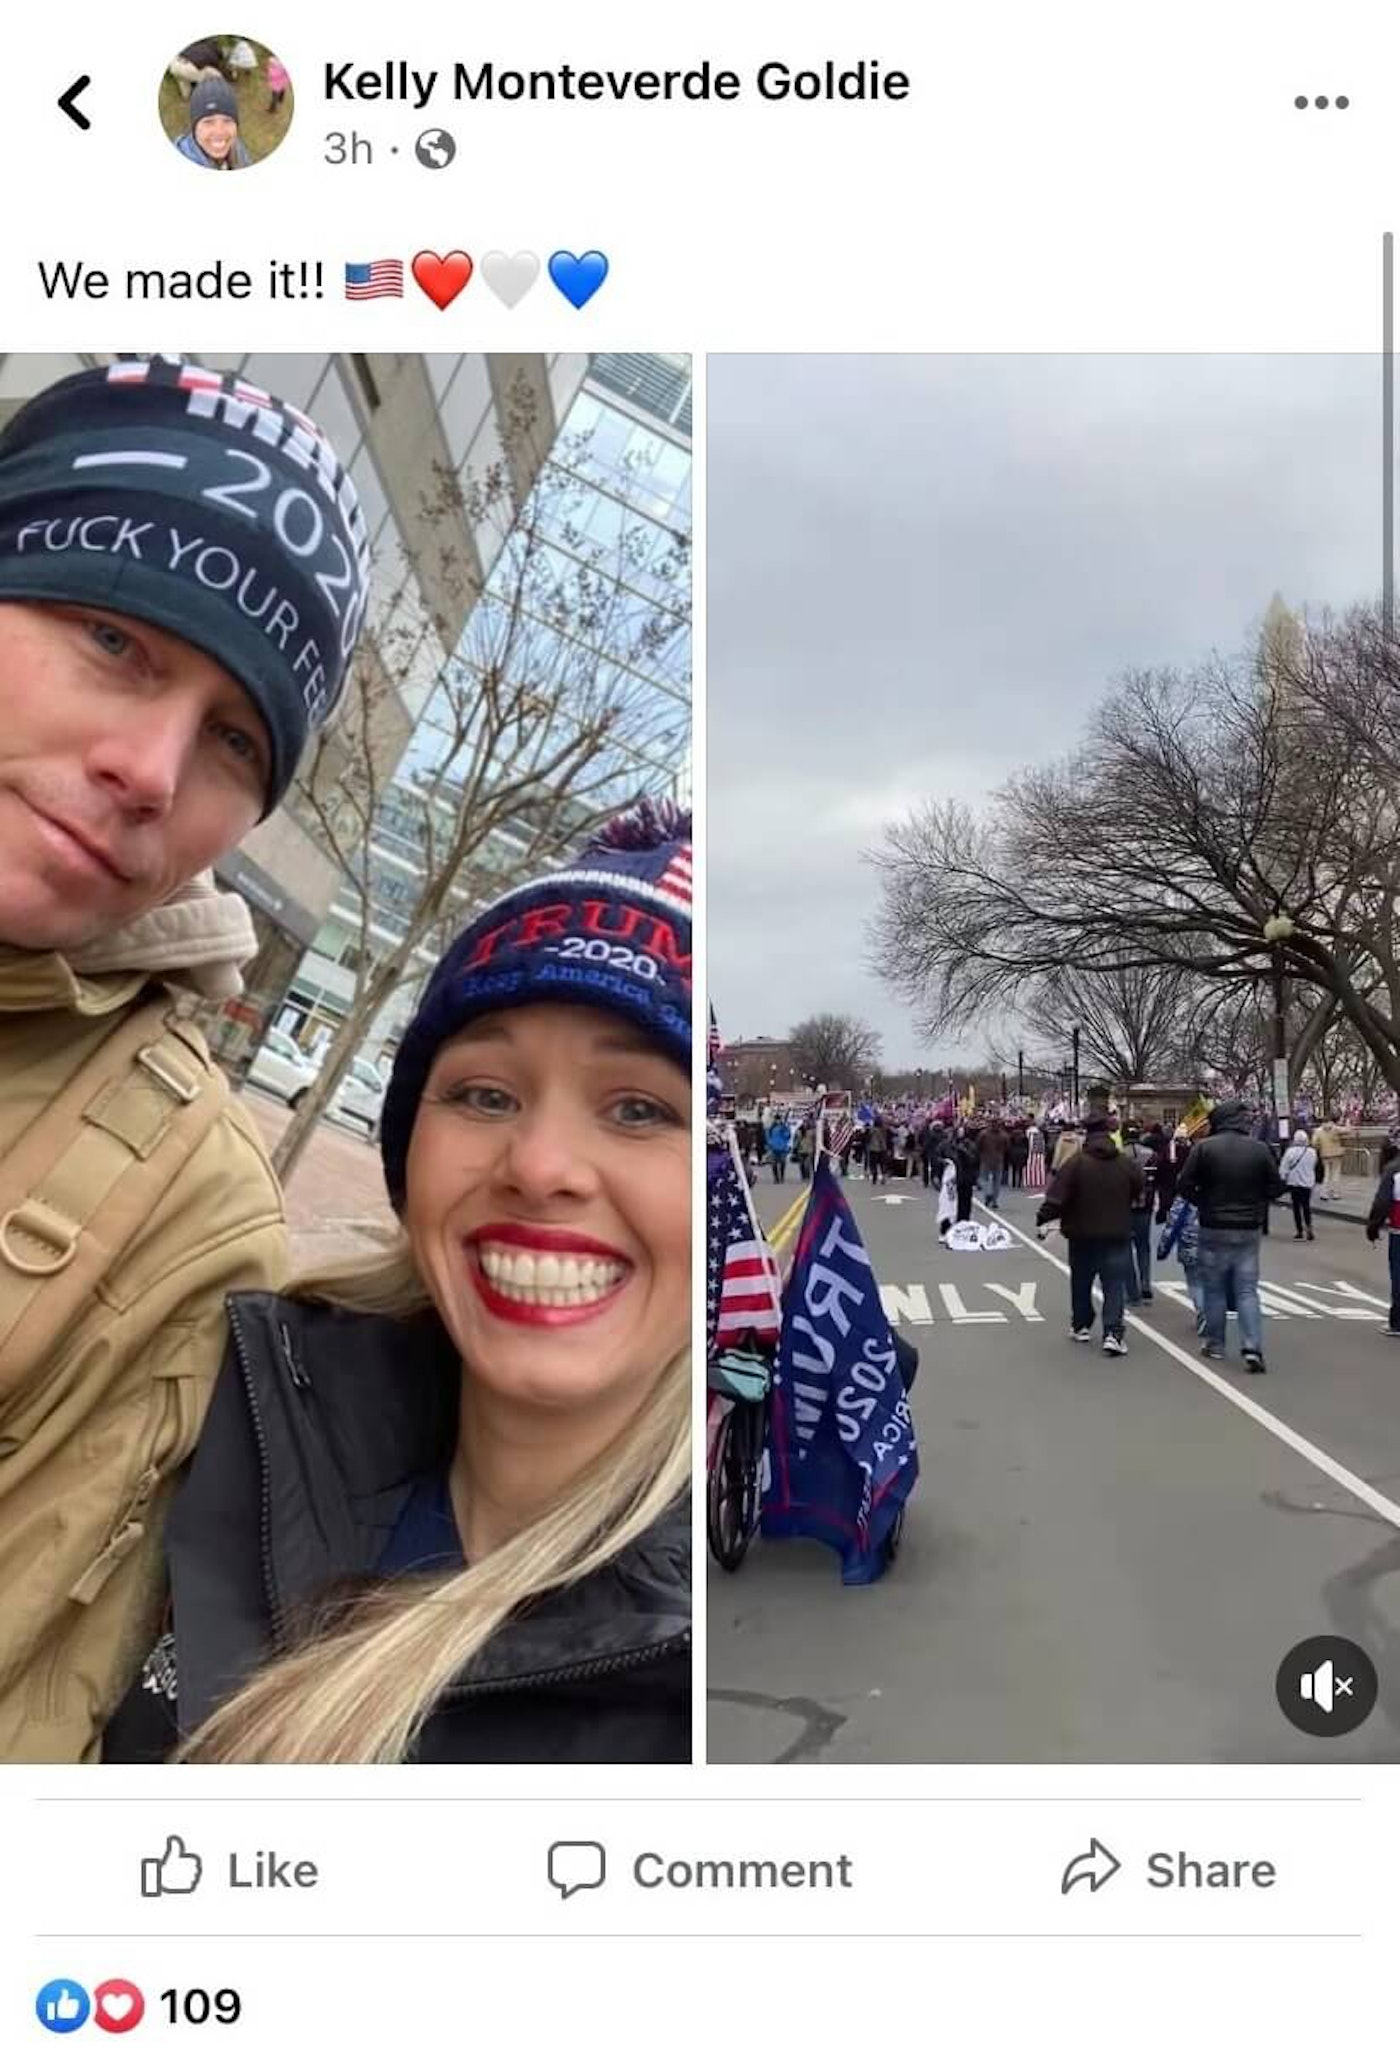 Officer Thomas Goldie of the Zelienople Borough Police Department attended Wednesday's Rally in Washington, DC. There's no evidence he took part in the attack on the Capitol.